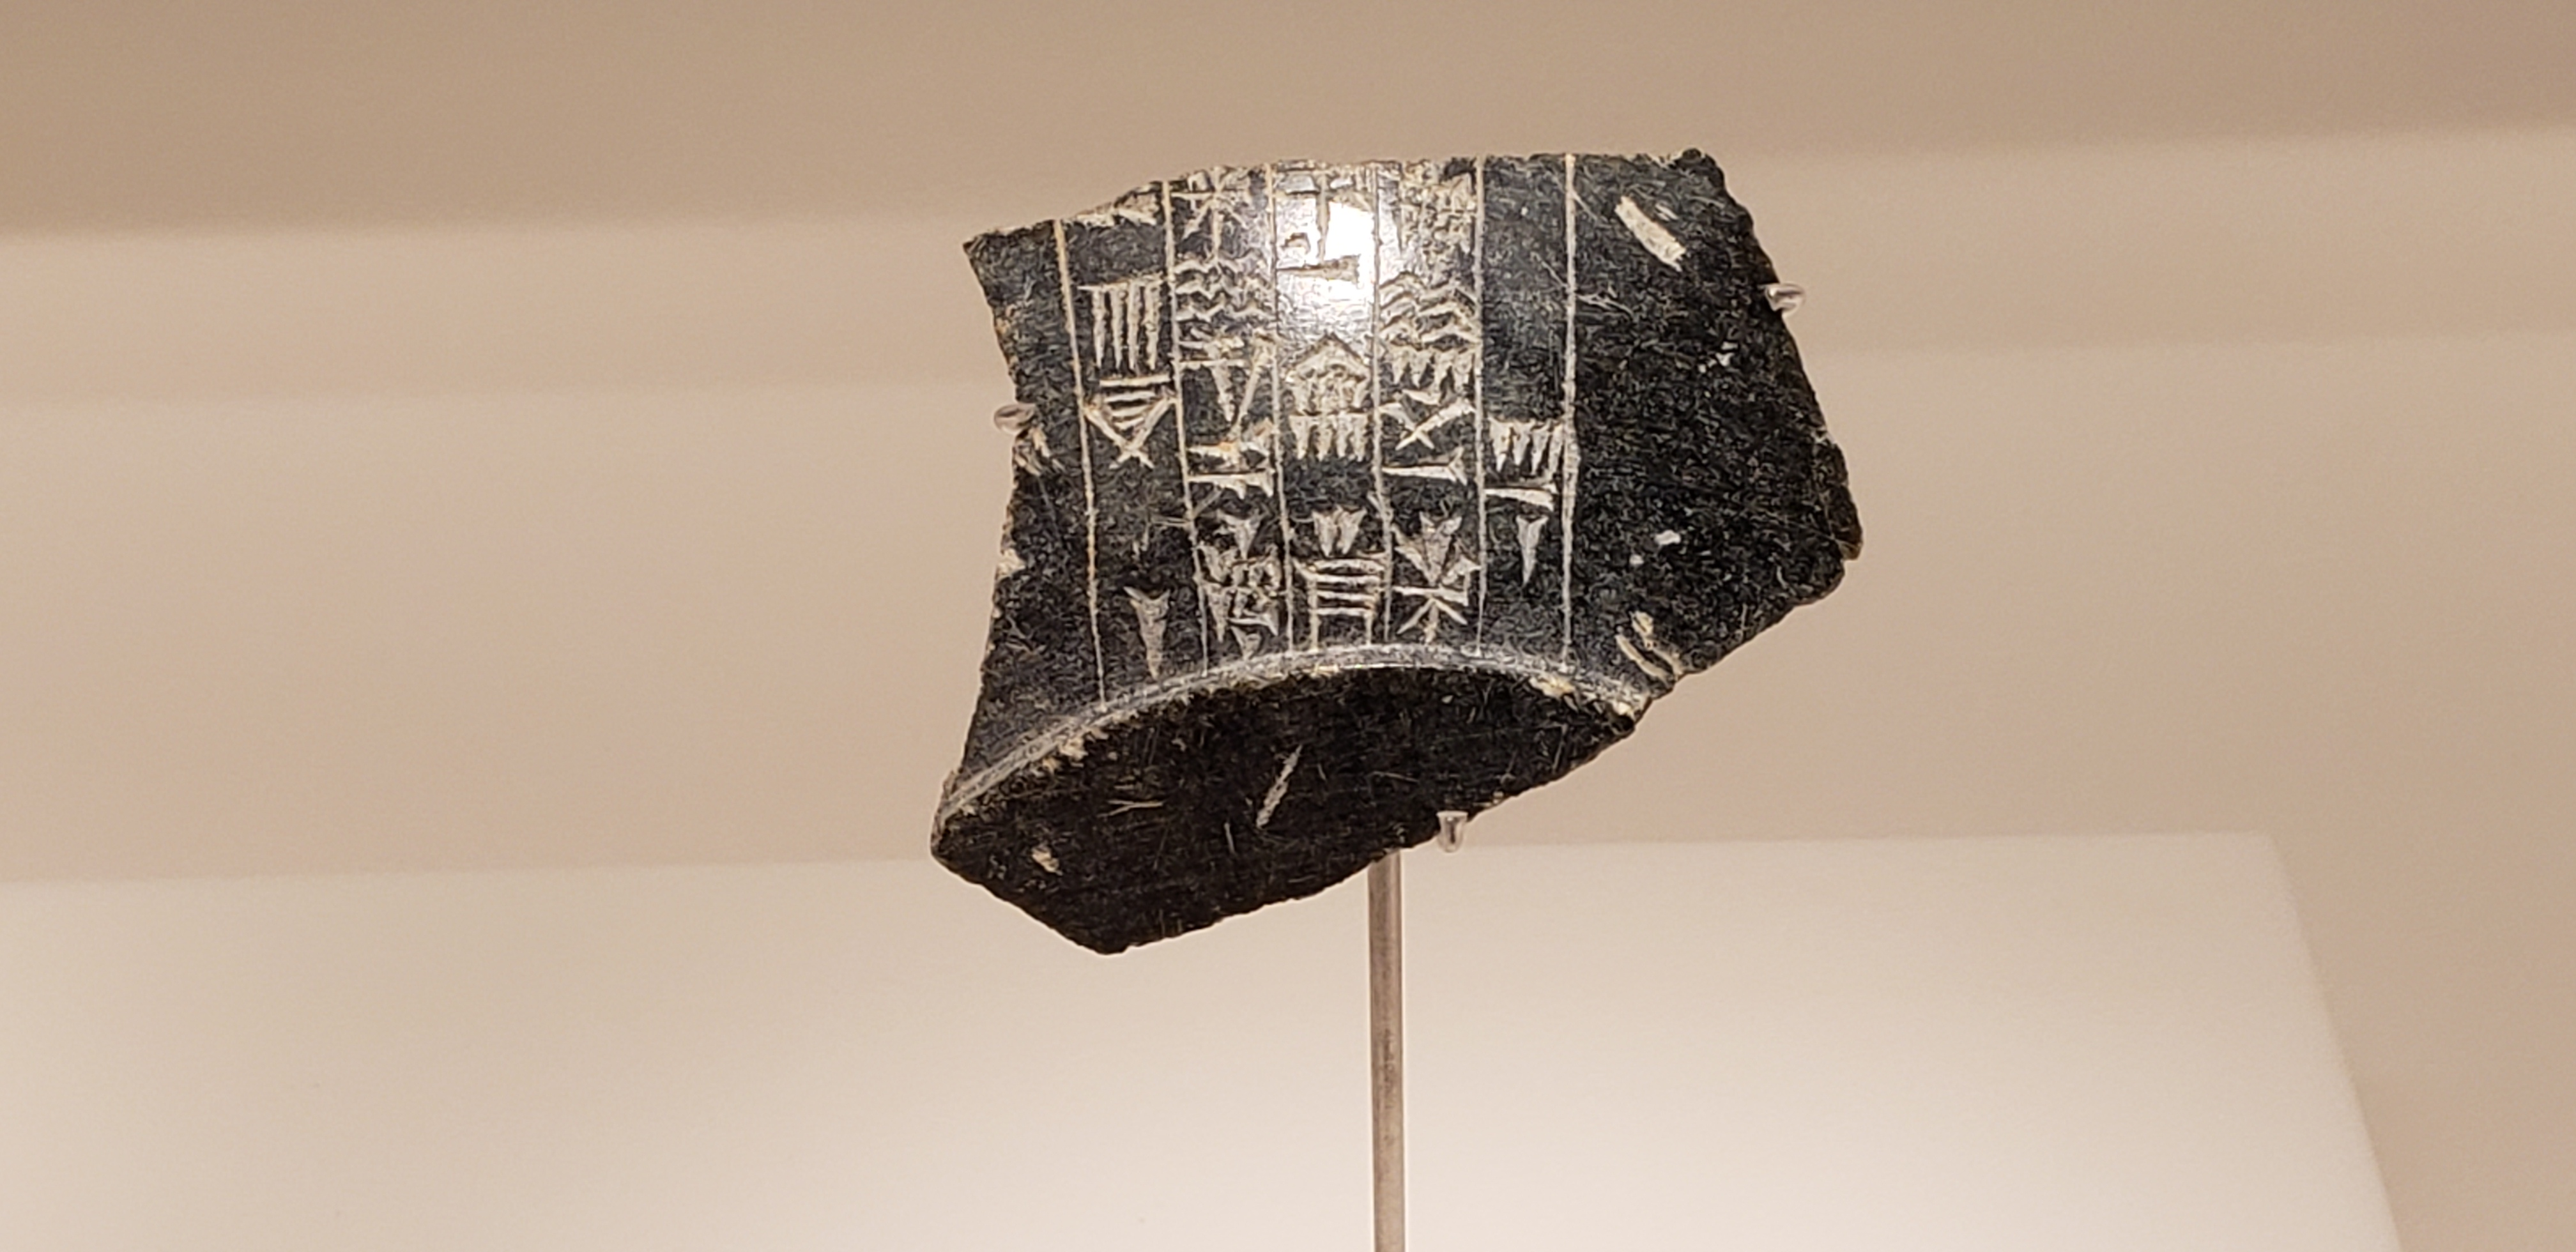 Stone vessel fragment with an inscription of a Dilmun king's name unearthed from a royal mound*